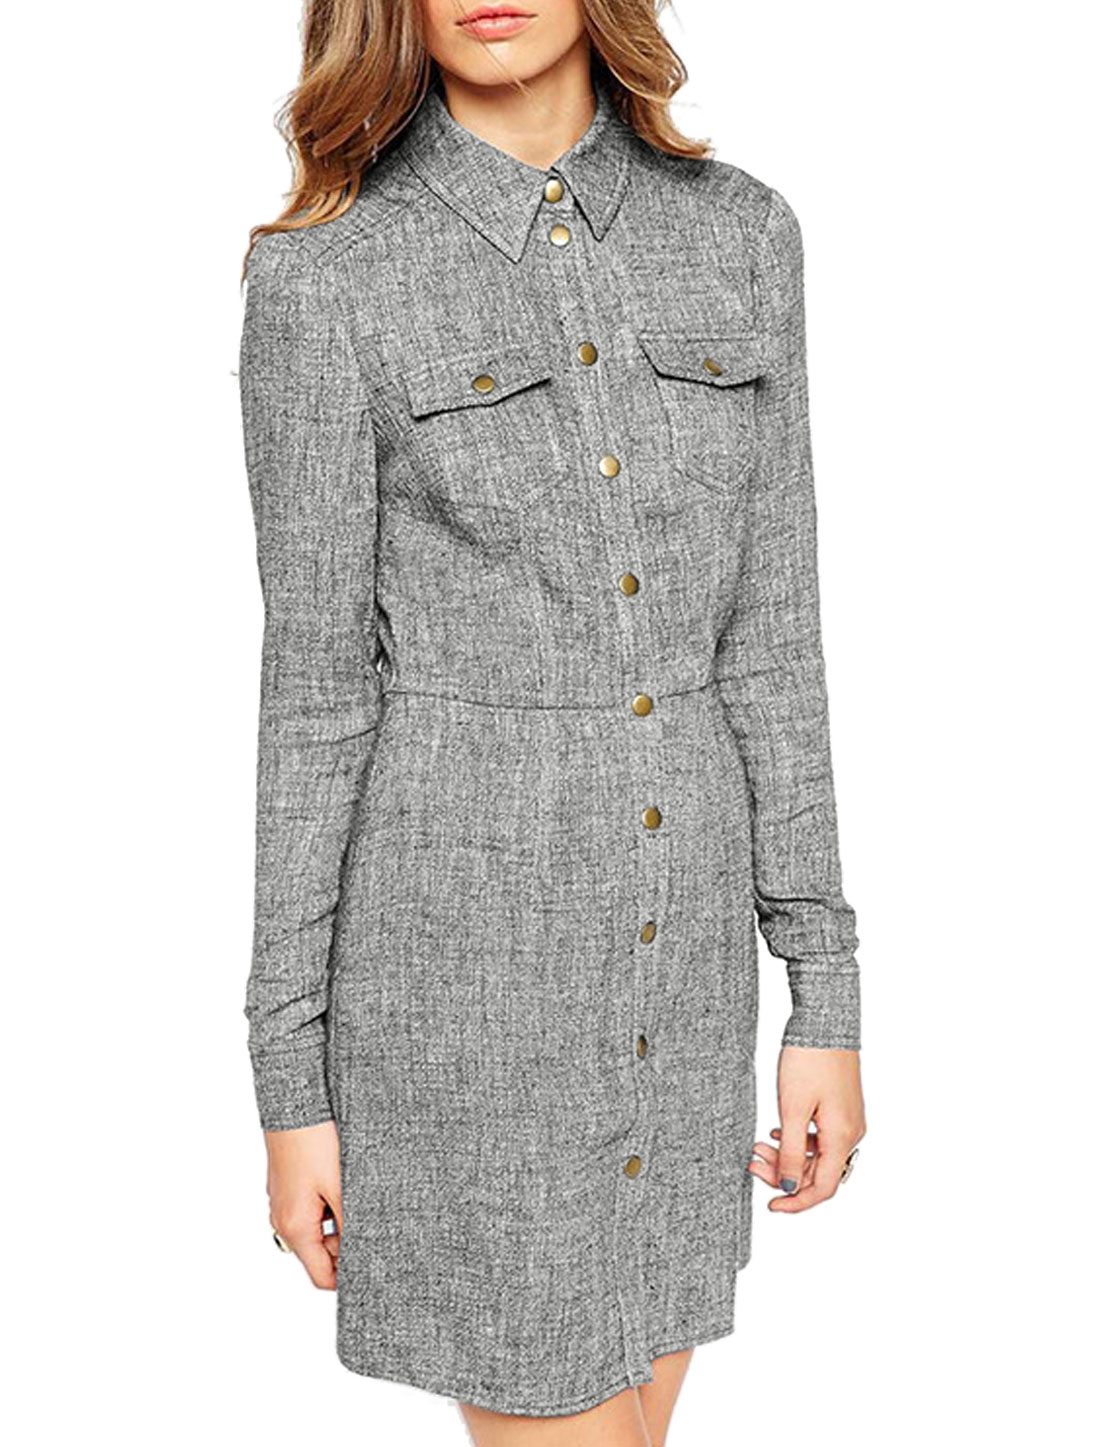 Women Point Collar Snap Buttons Closure Shirt Dress Gray M